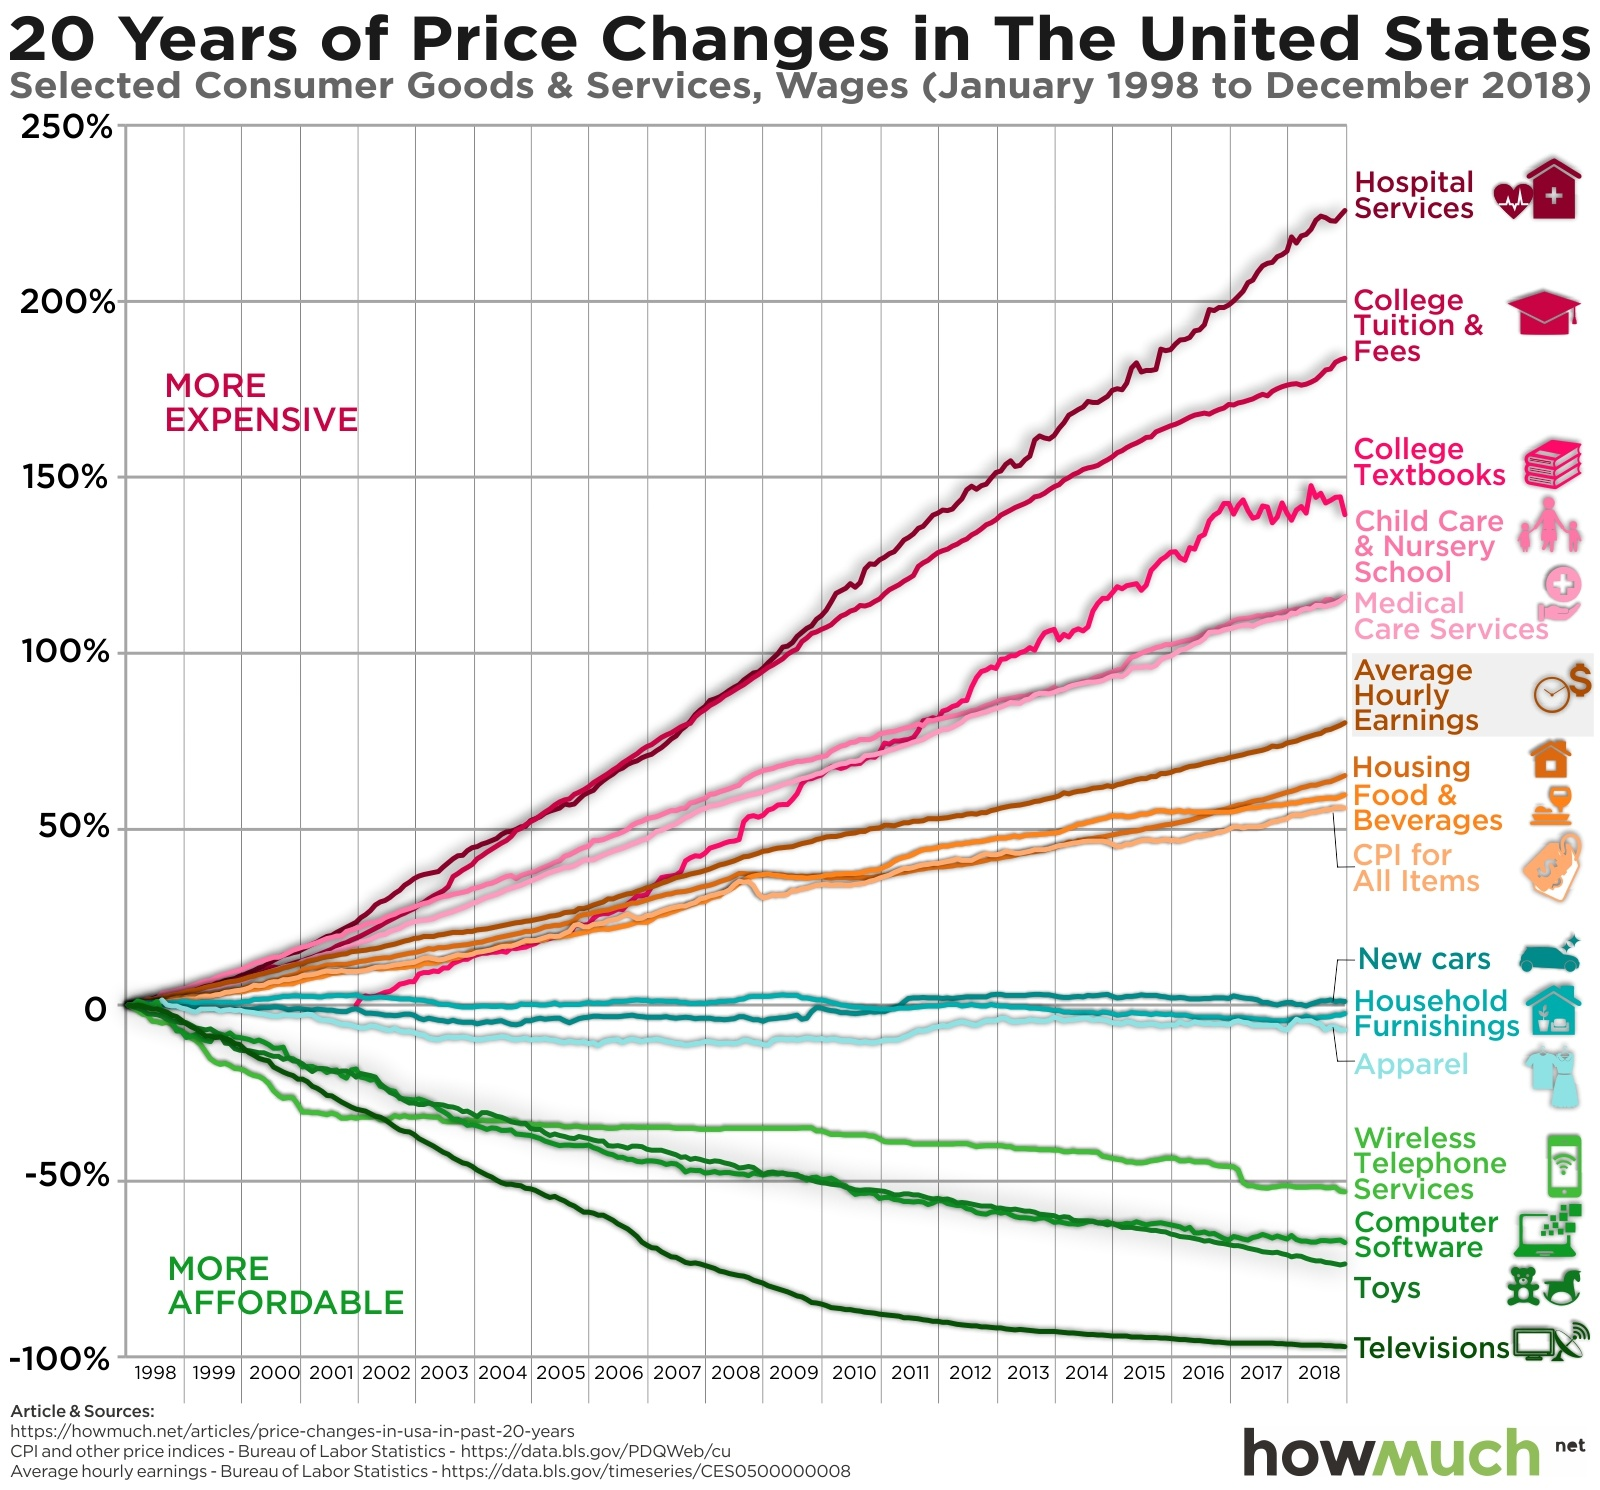 price-changes-in-usa-in-past-20-years-22